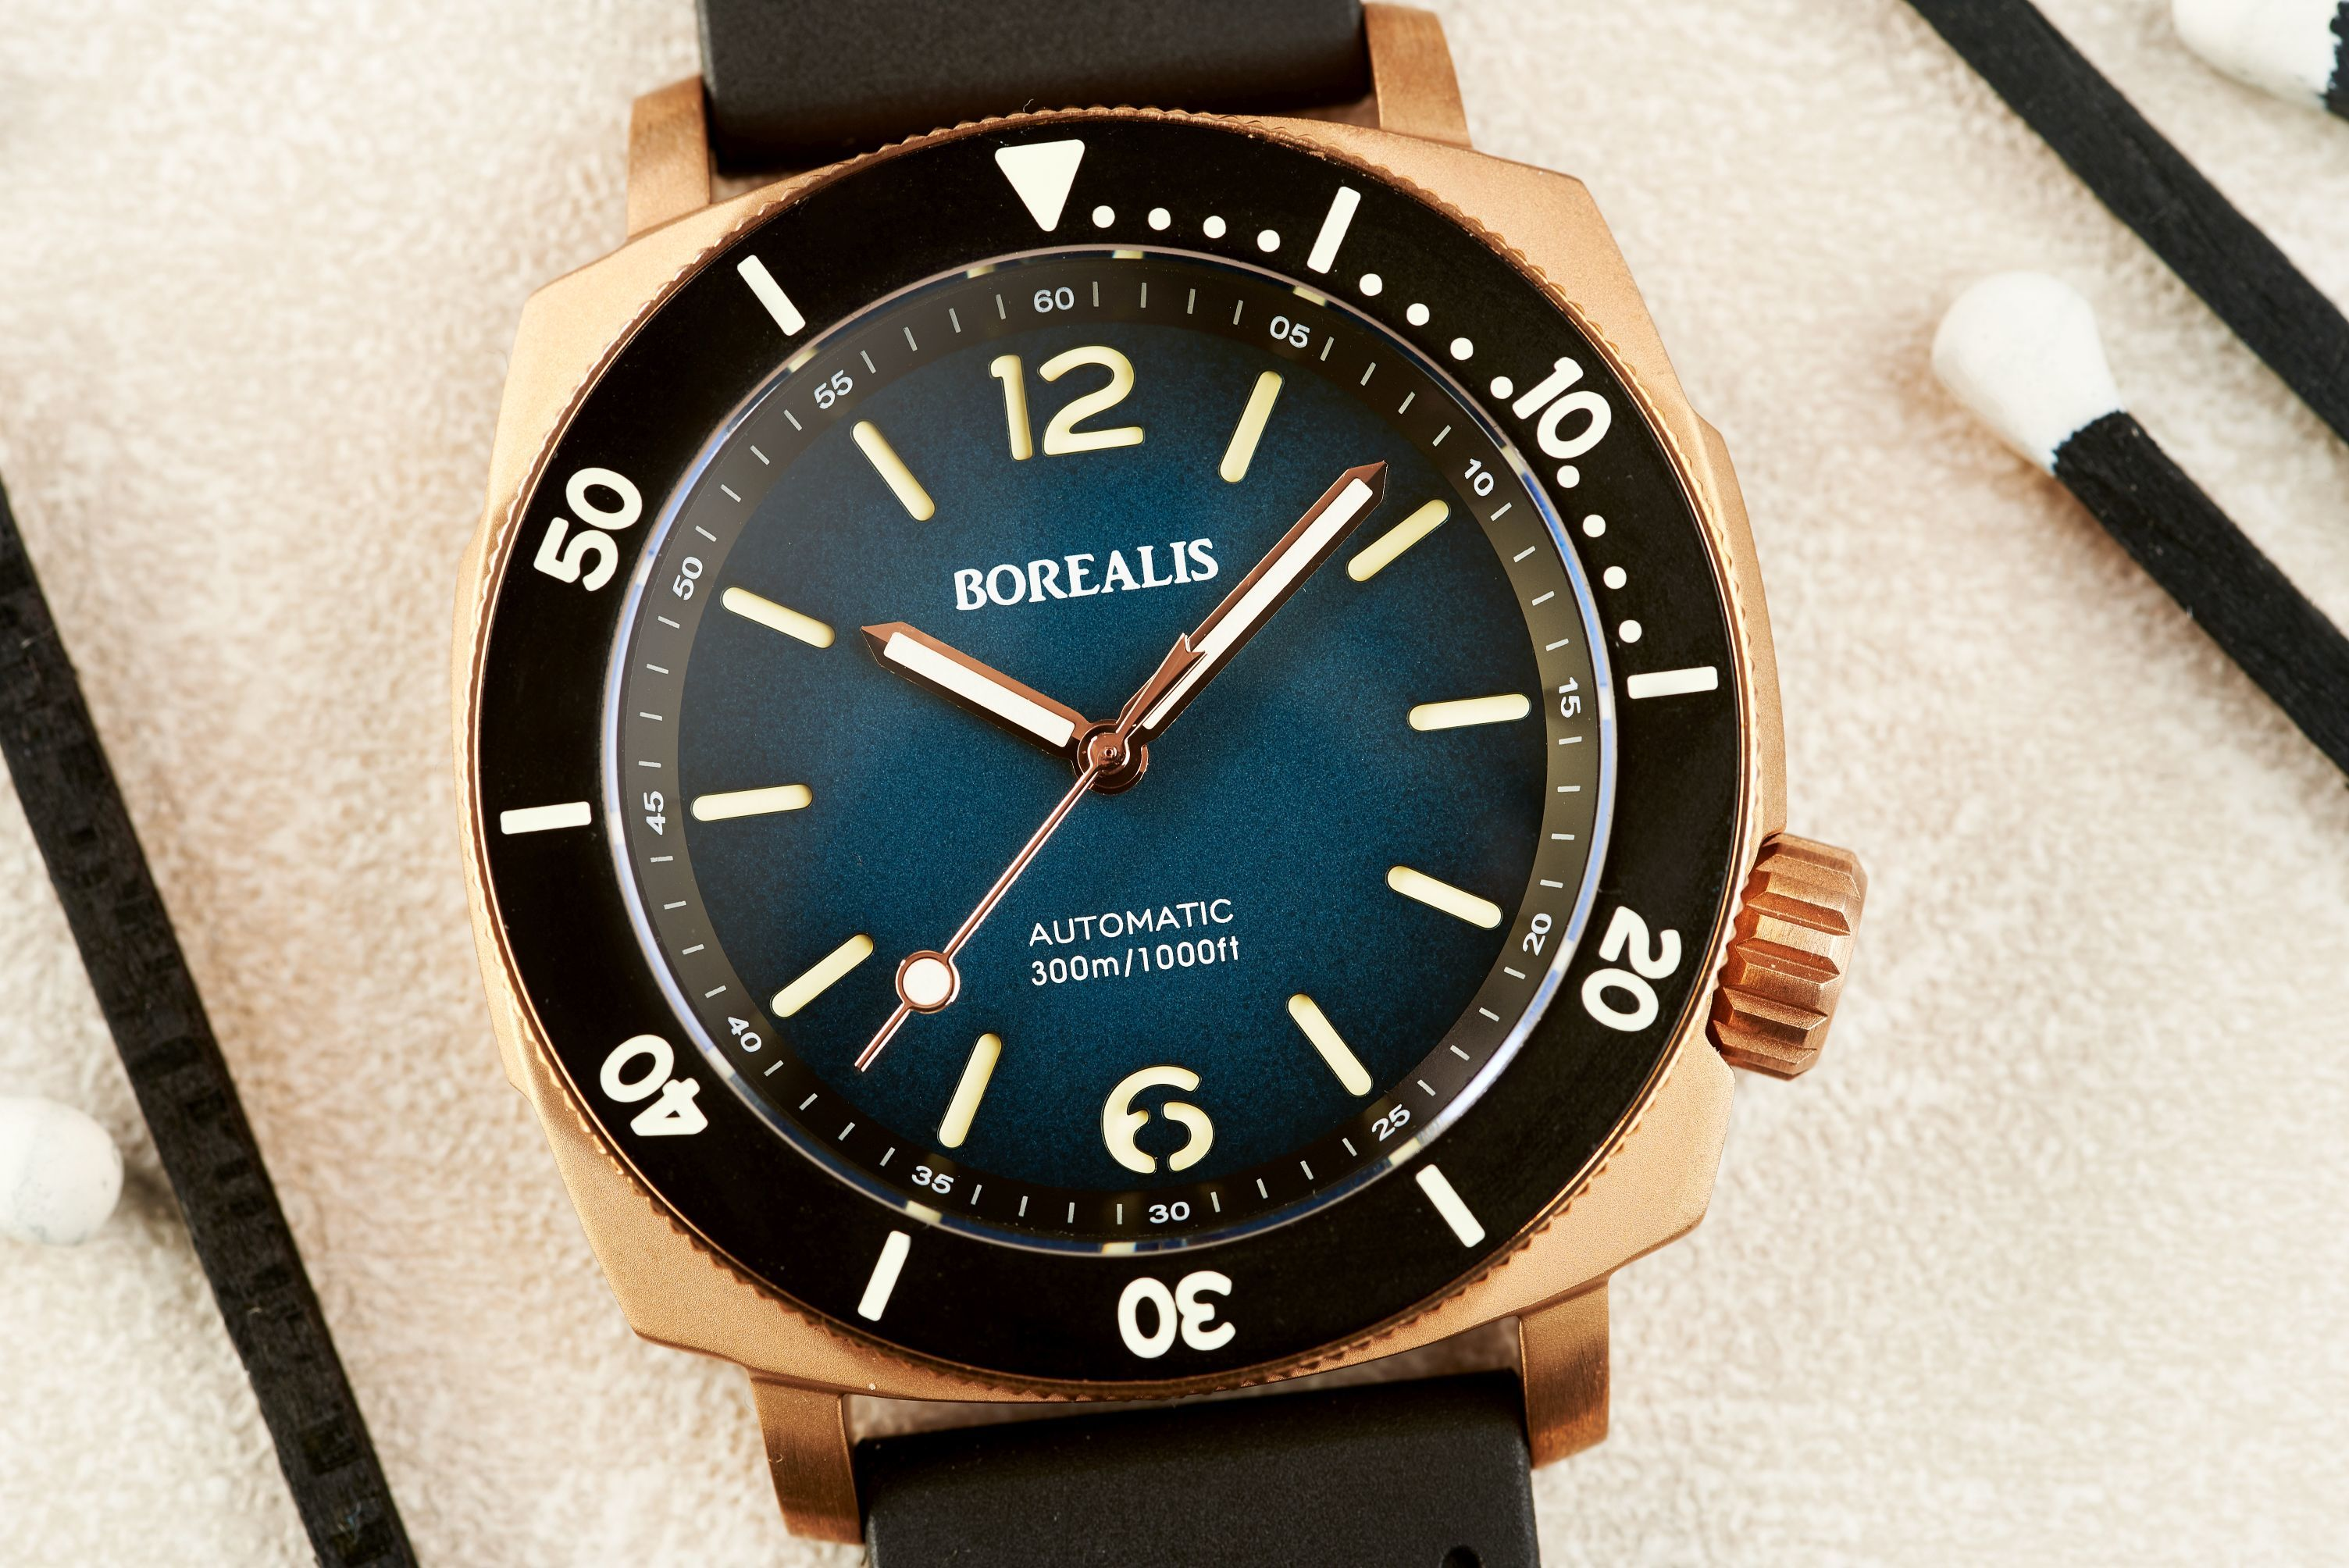 Borealis Navale CuSn8 Bronze 300m Diver Watch Miyota 9015 Blue Fumed Dial Version CR Rotating Bezel BNAVALECRBLUE